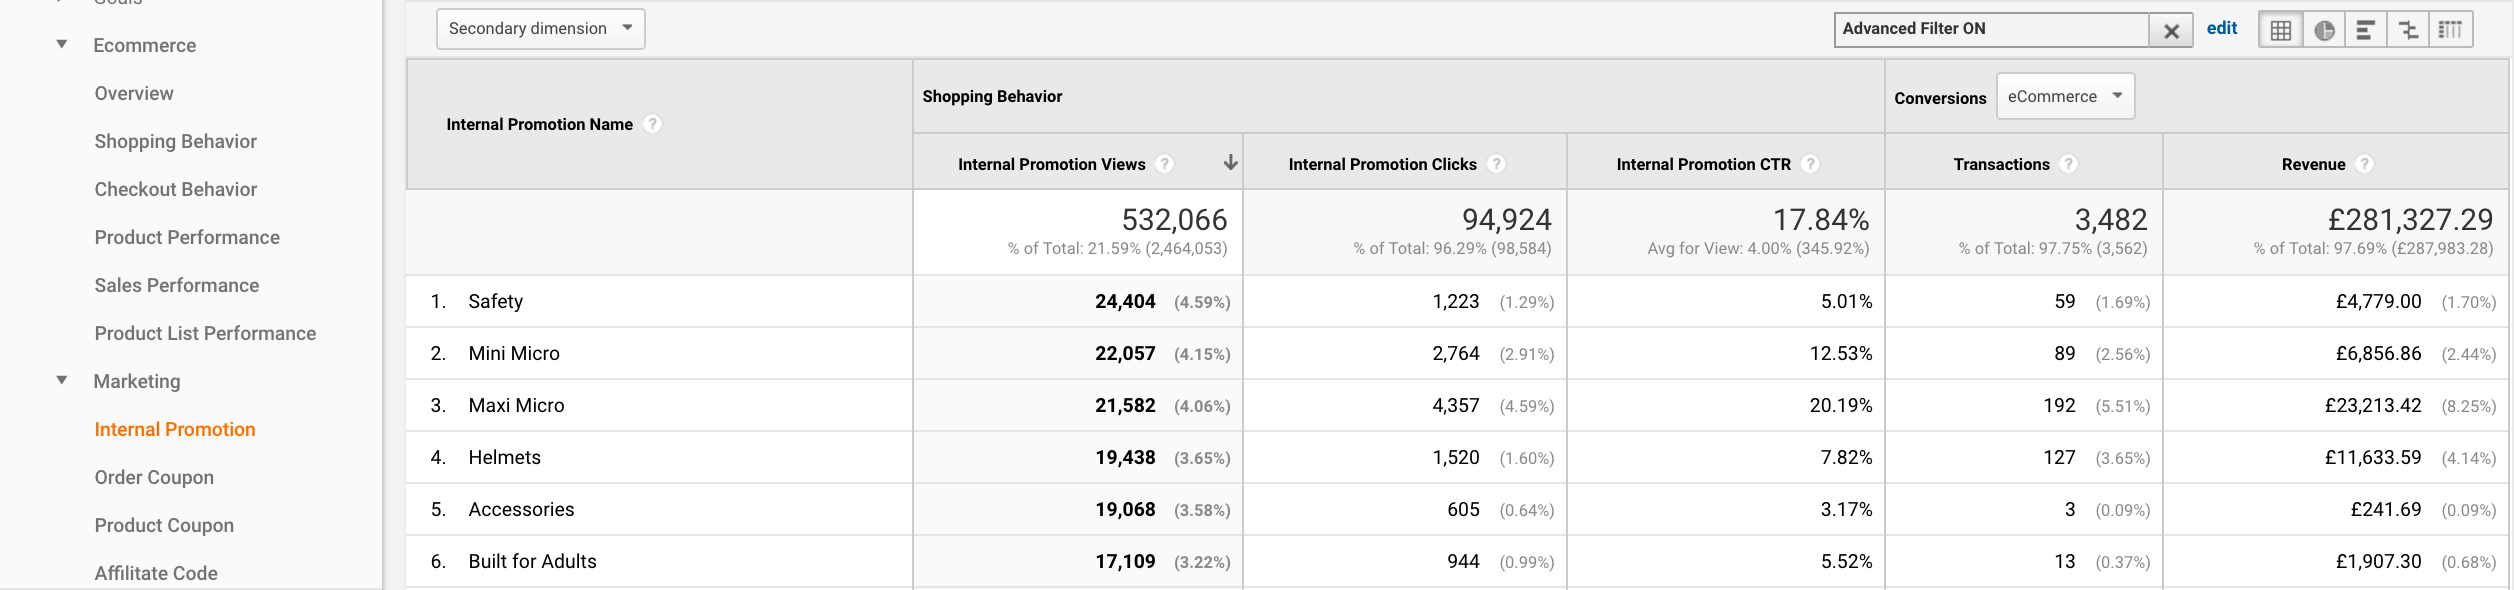 Internal promotions CTR in Google Analytics